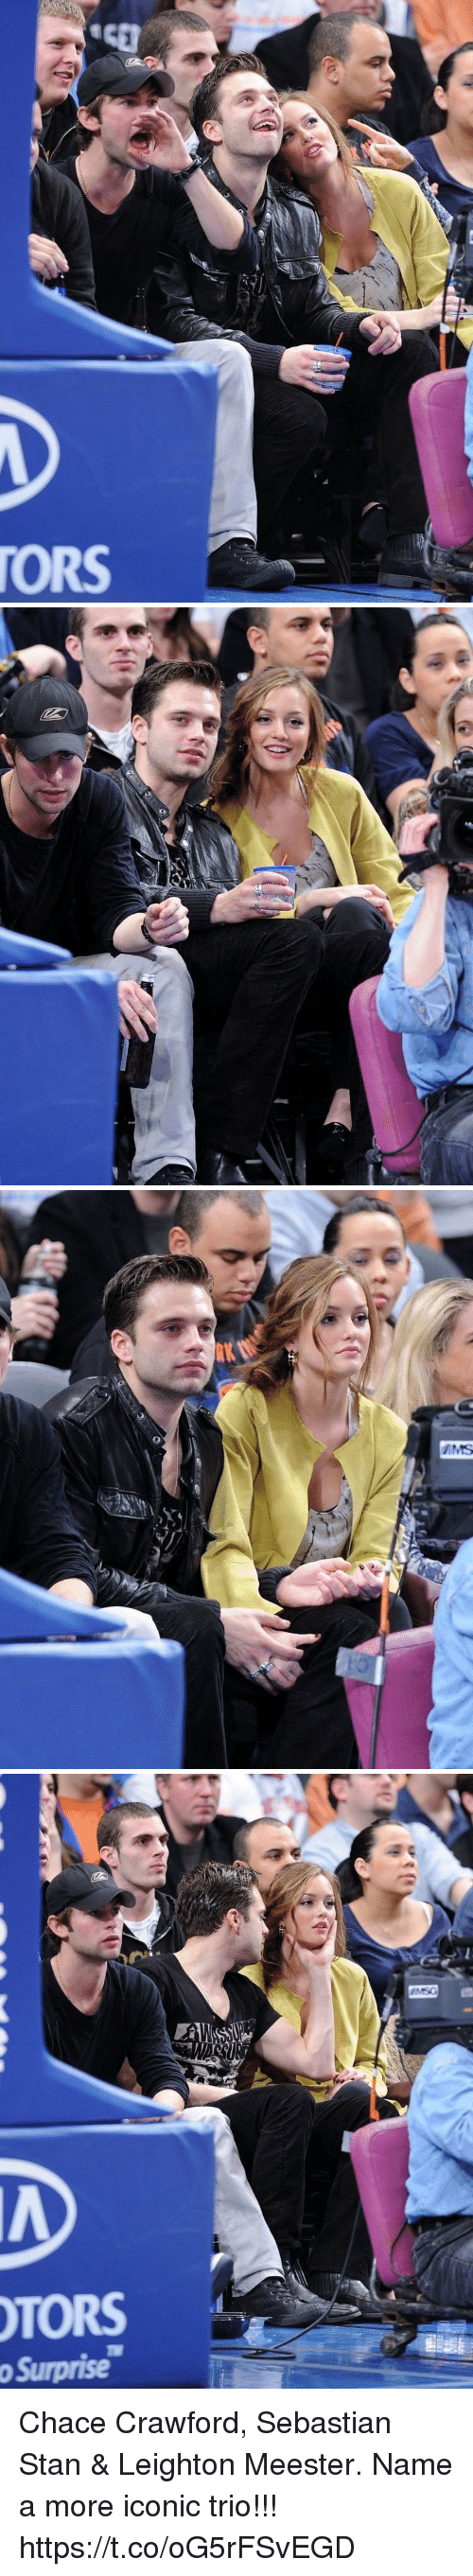 Memes, Stan, and Leighton Meester: TORS   TORS  o Surprise Chace Crawford, Sebastian Stan & Leighton Meester. Name a more iconic trio!!! https://t.co/oG5rFSvEGD